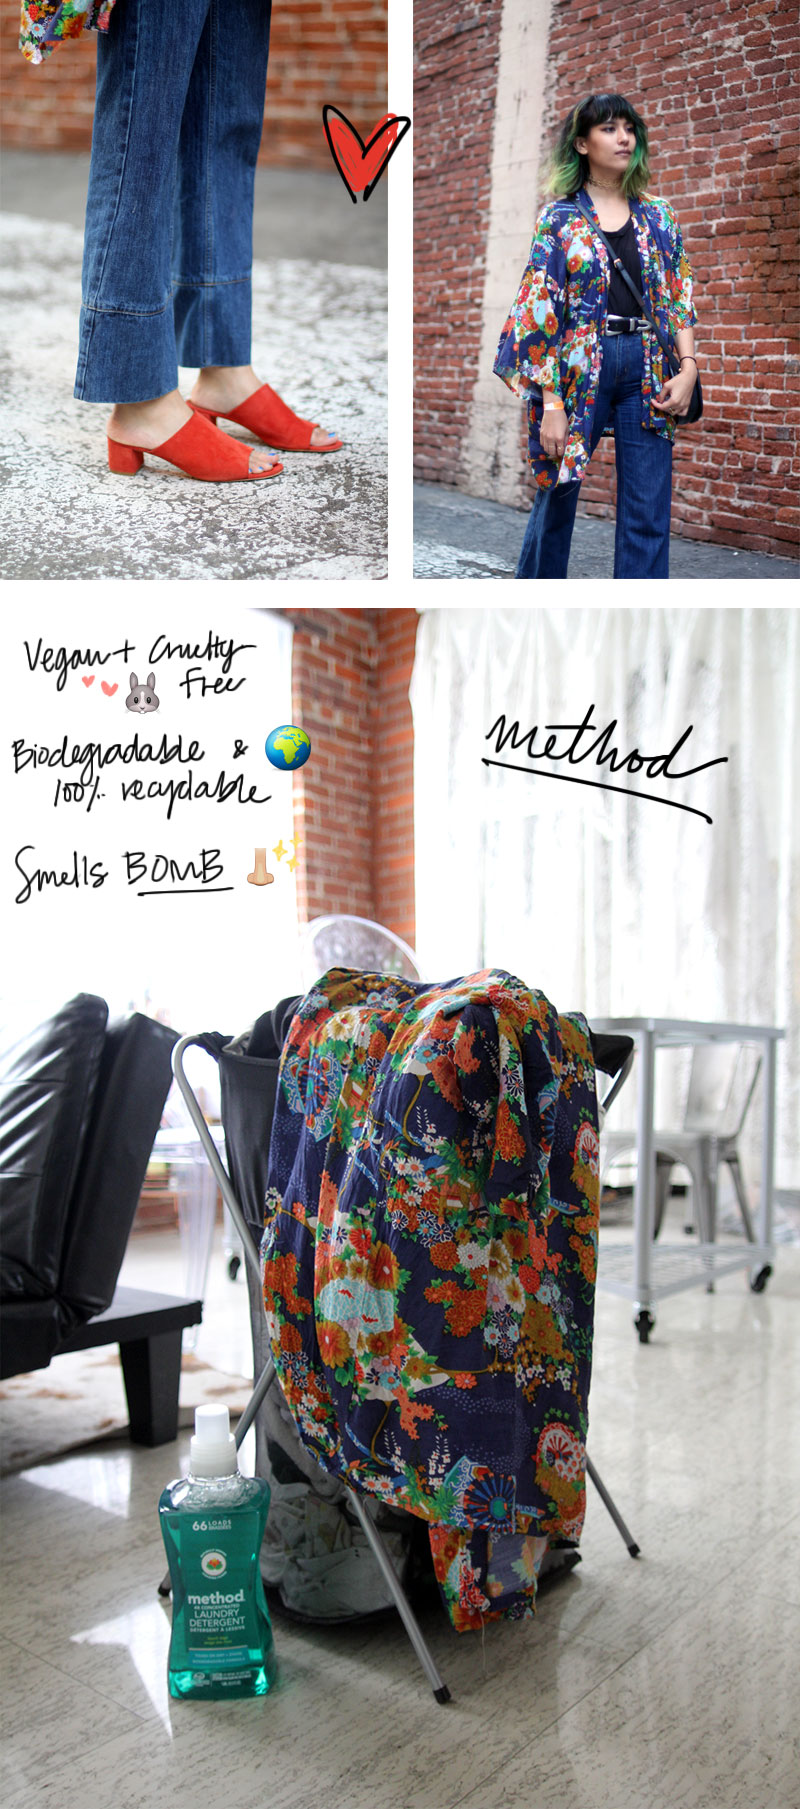 method home cleaning, floral vinage kimono, wood wood denim cropped flared jeans, Mansur Gavriel mules in brick